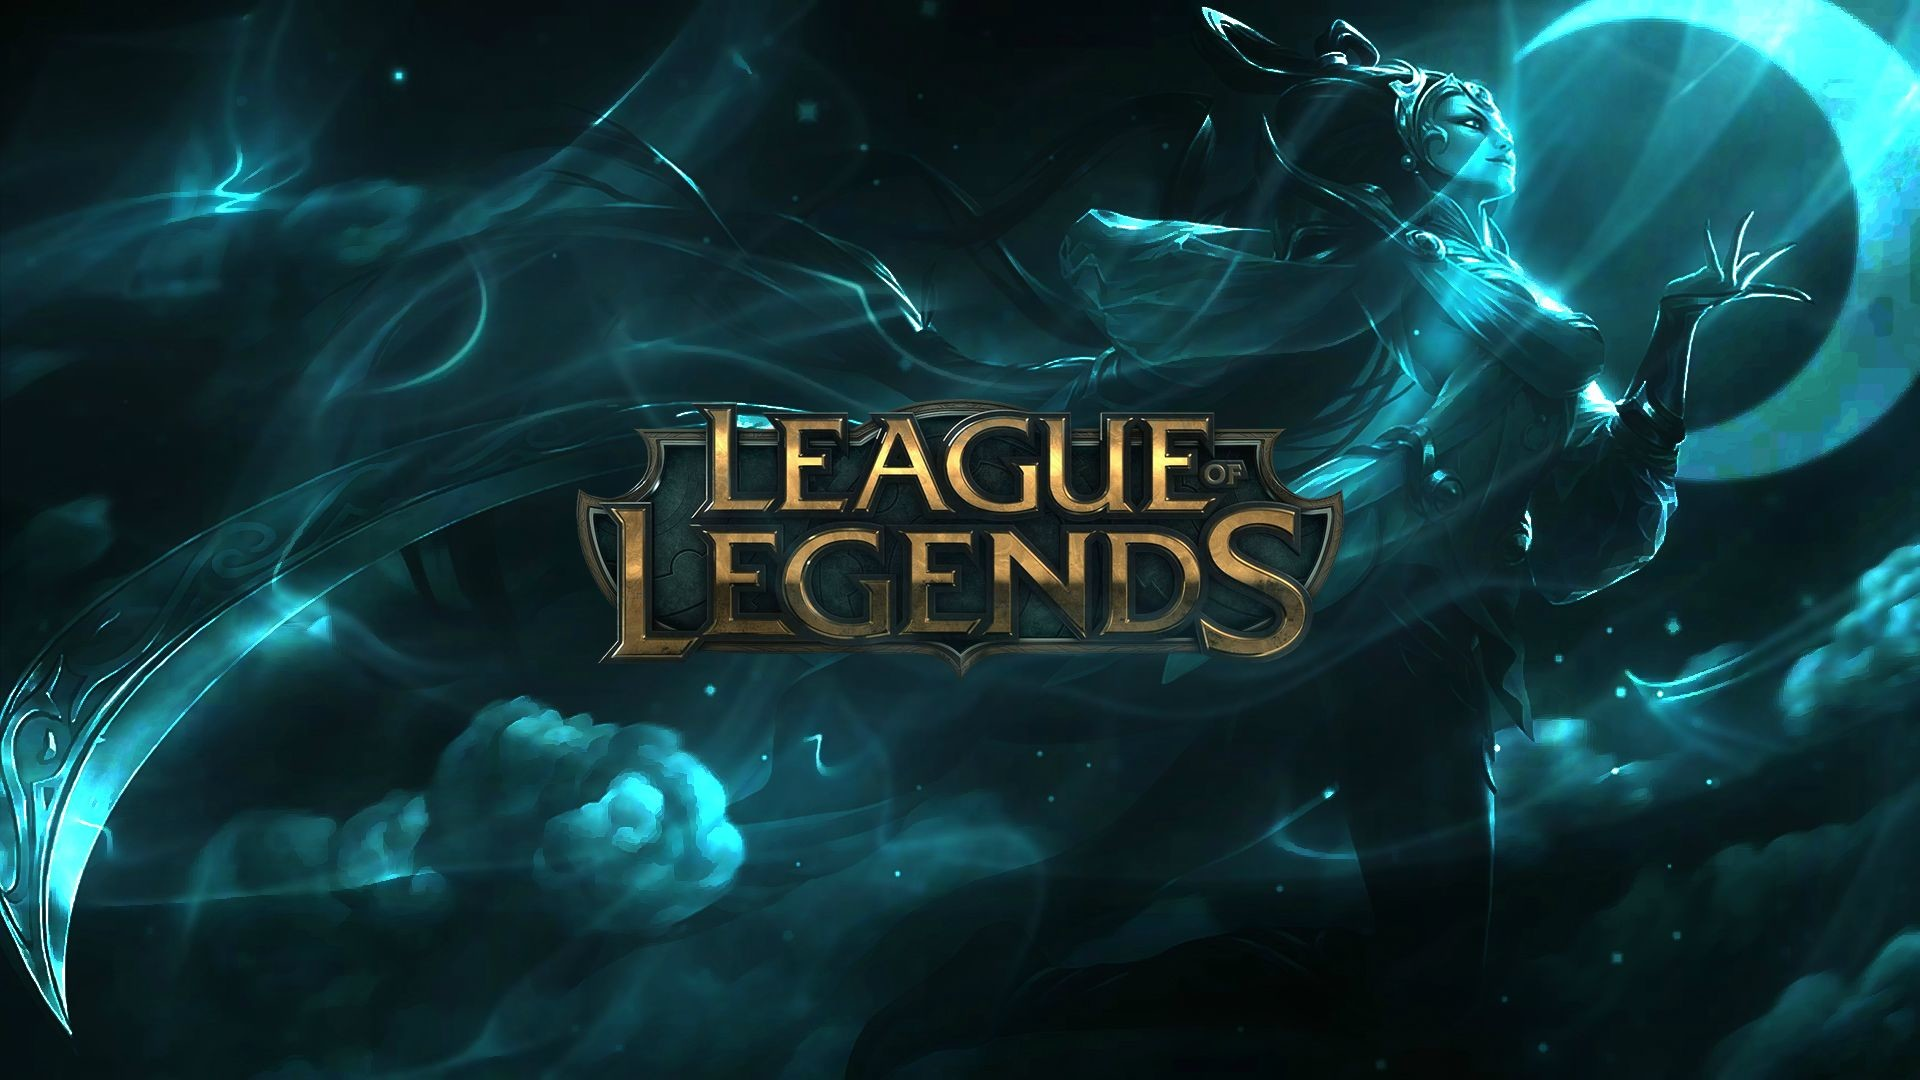 League of Legends Wallpapers Collection Including